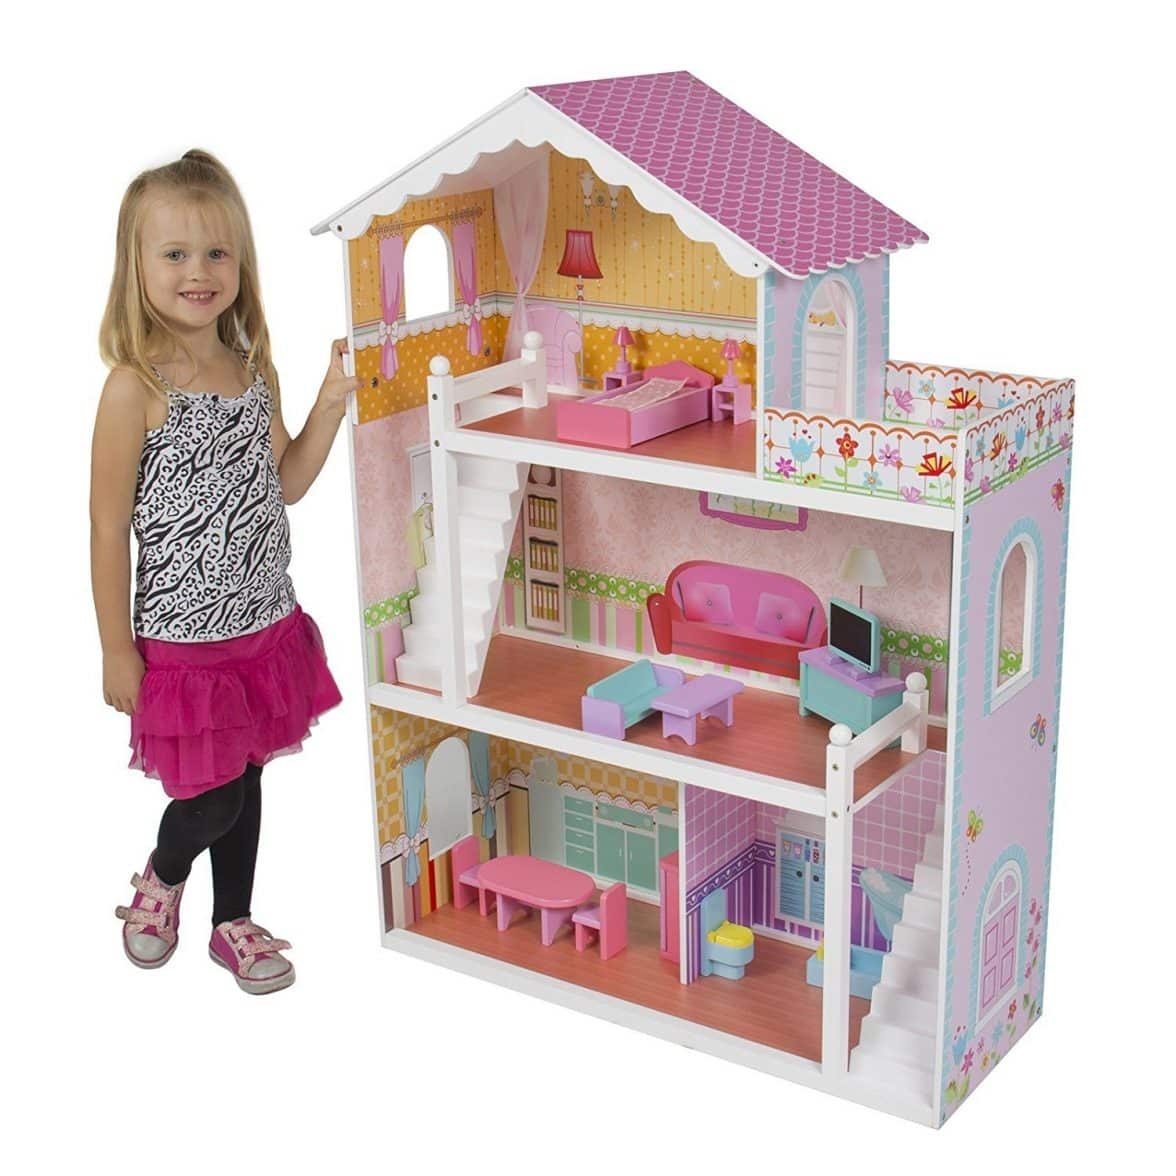 The Dolls House Large Children 39s Wooden Dollhouse Fits Barbie Doll House